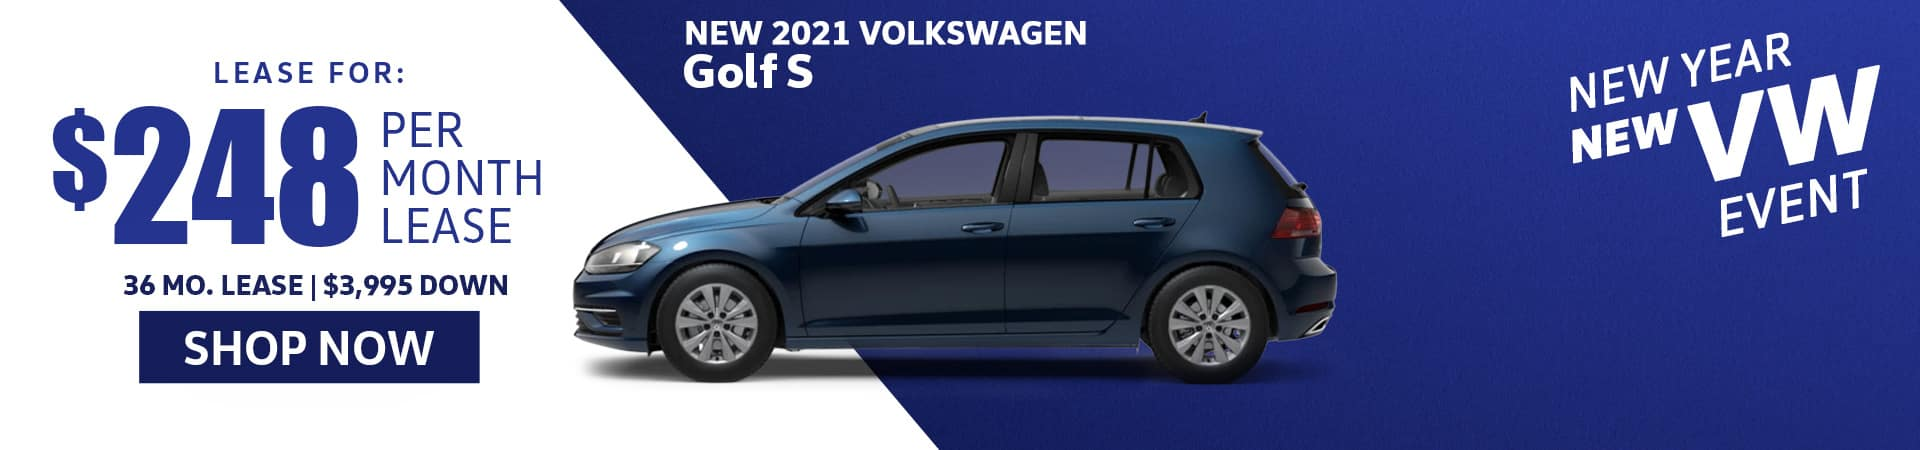 New 2021 golf s lease special